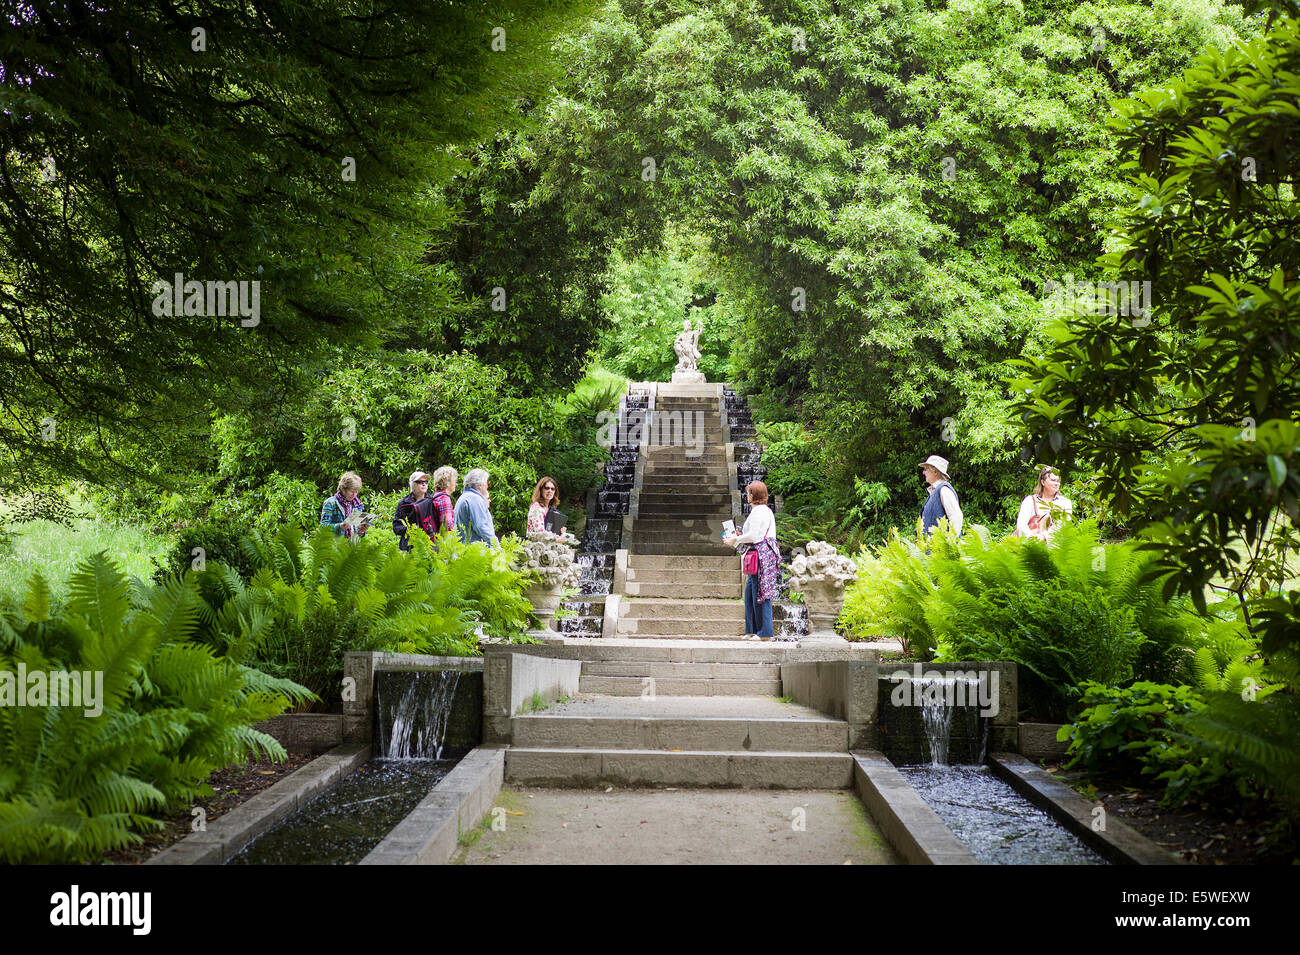 hall climb stock photos hall climb stock images alamy guide ors to a verdant landscape garden water rills at holker hall in cumbria